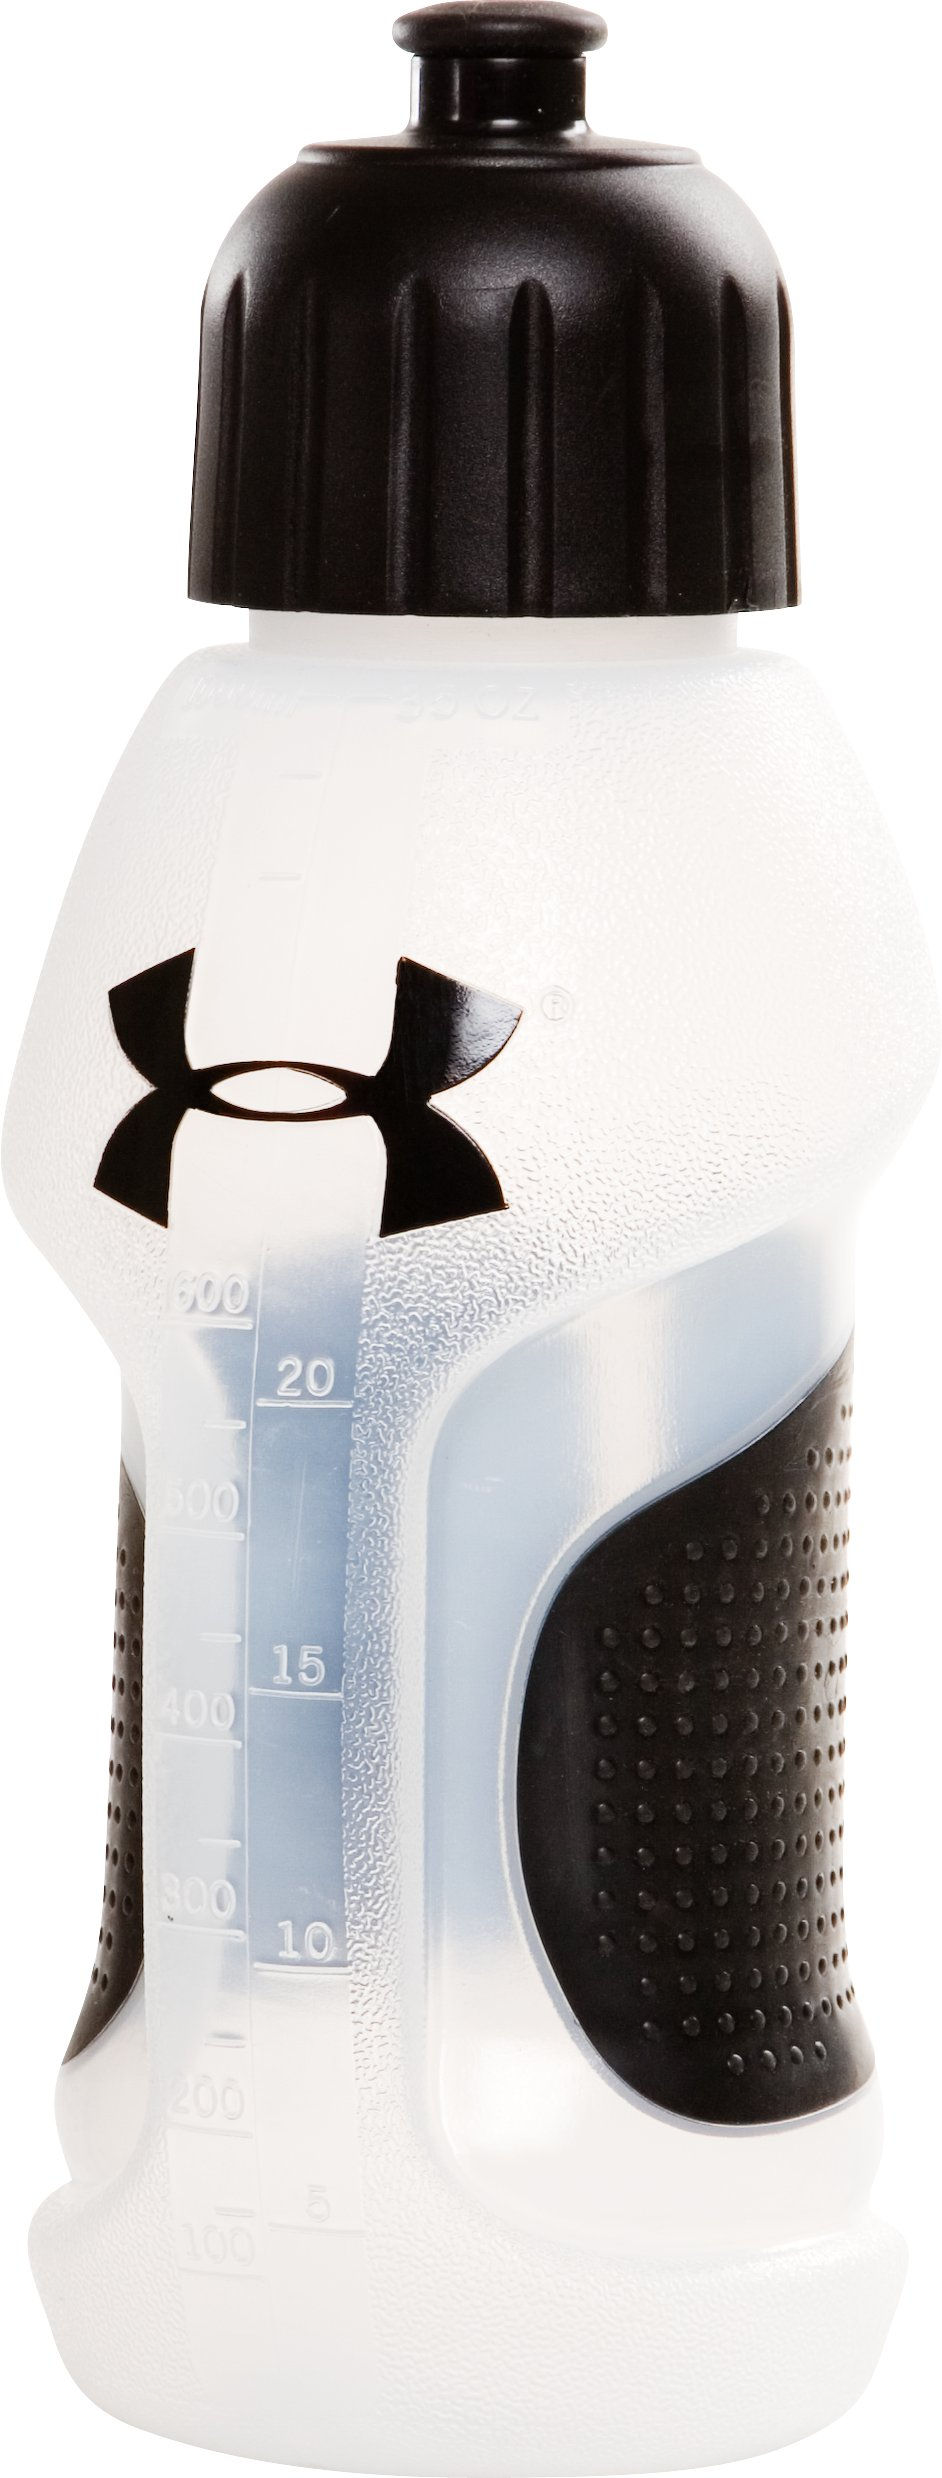 Performance Bottle, White